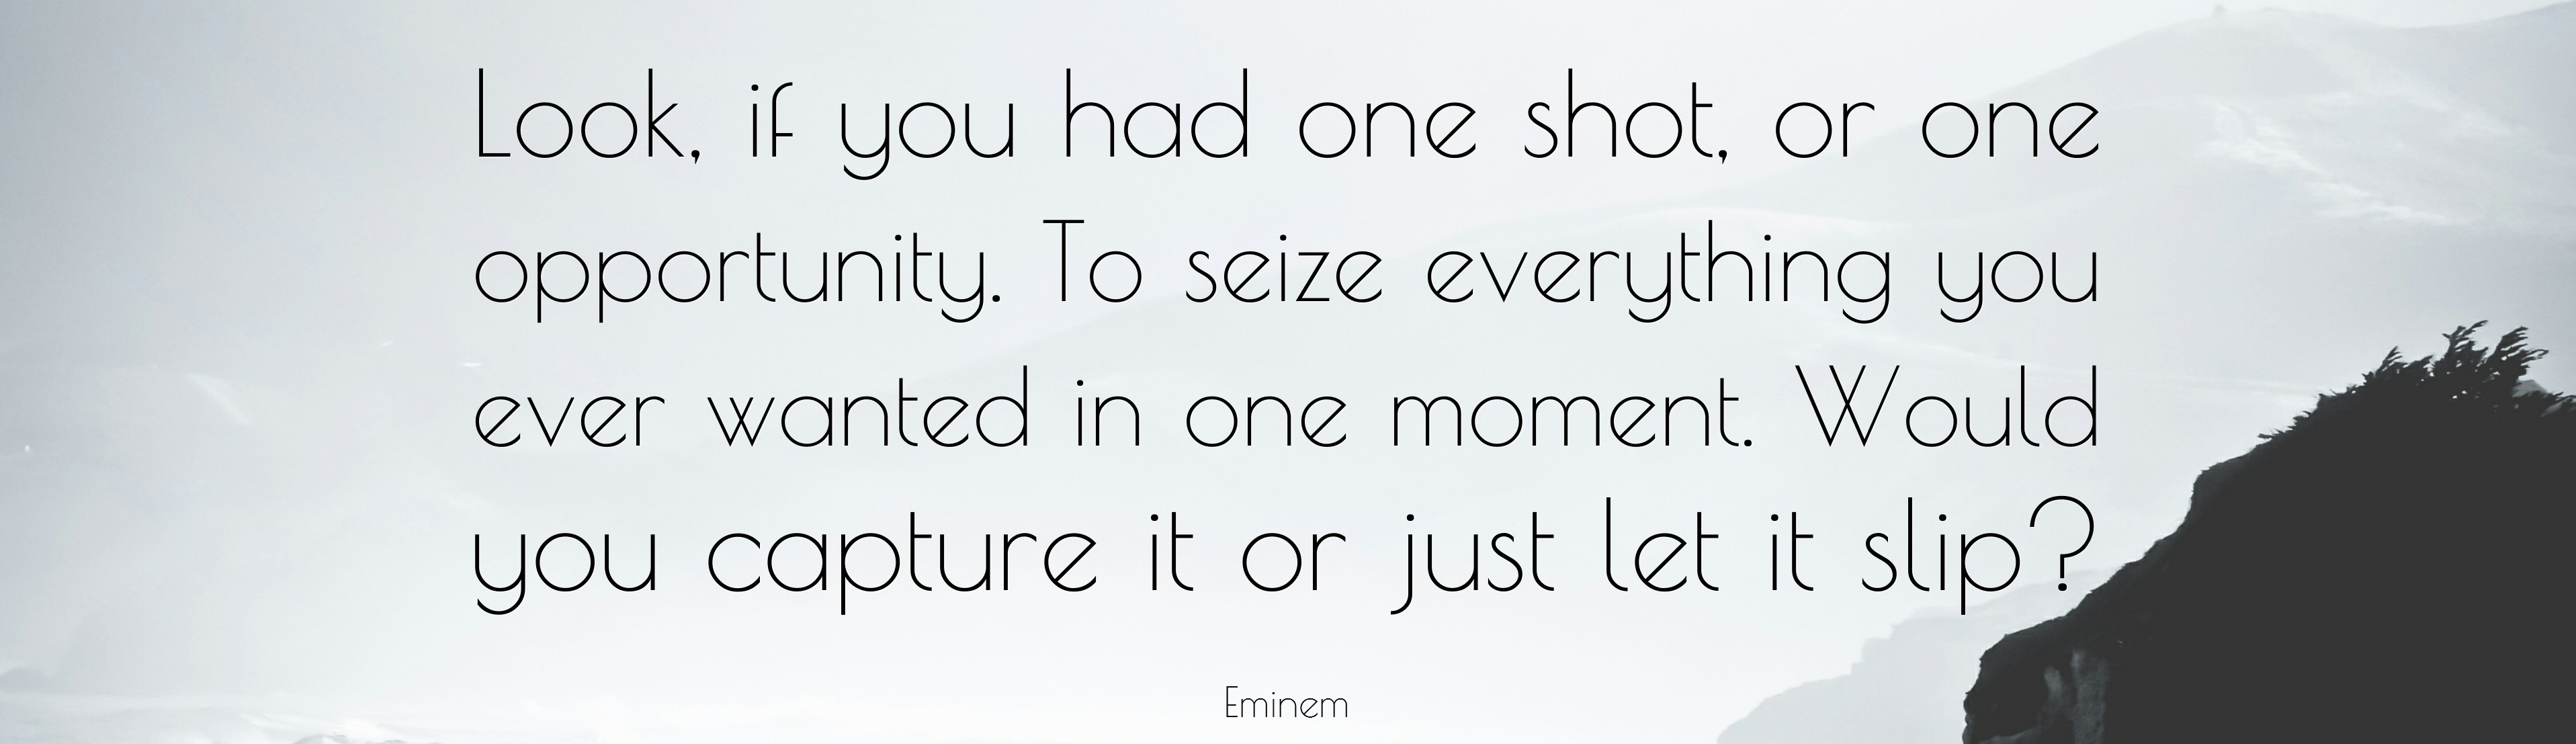 6341-Eminem-Quote-Look-if-you-had-one-shot-or-one-opportunity-To-seize-01